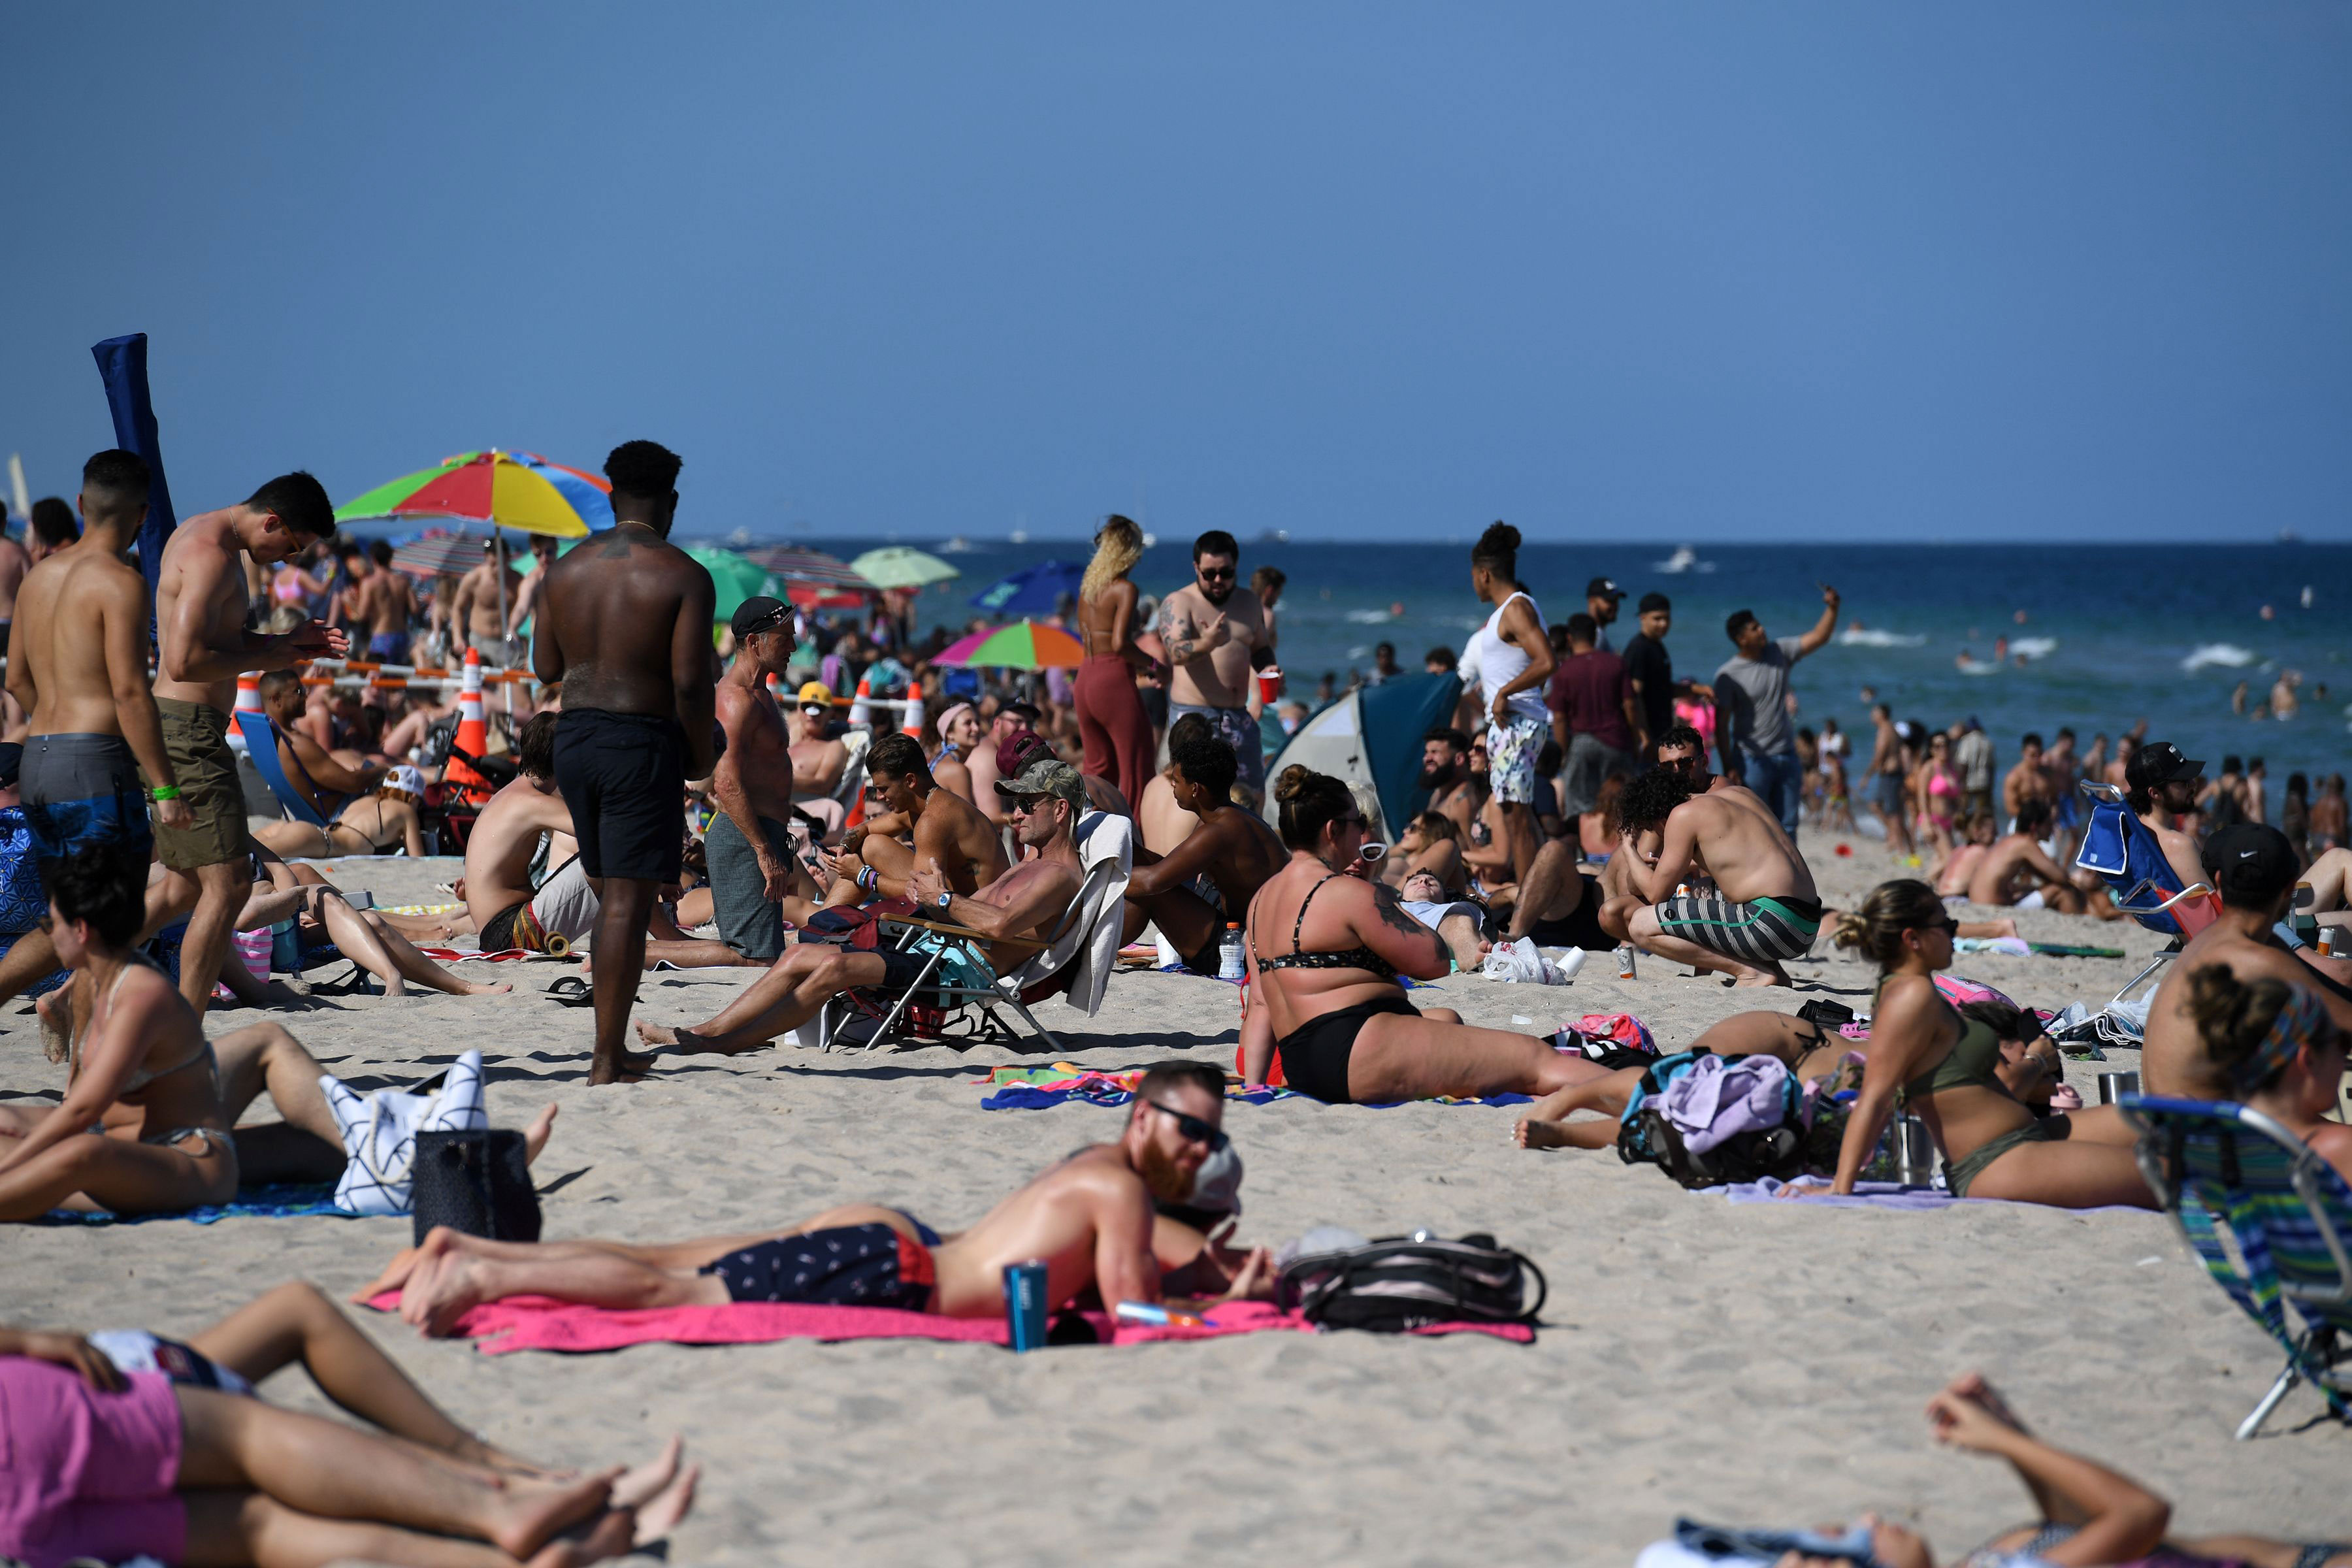 People visit Fort Lauderdale Beach in Florida on March 14.